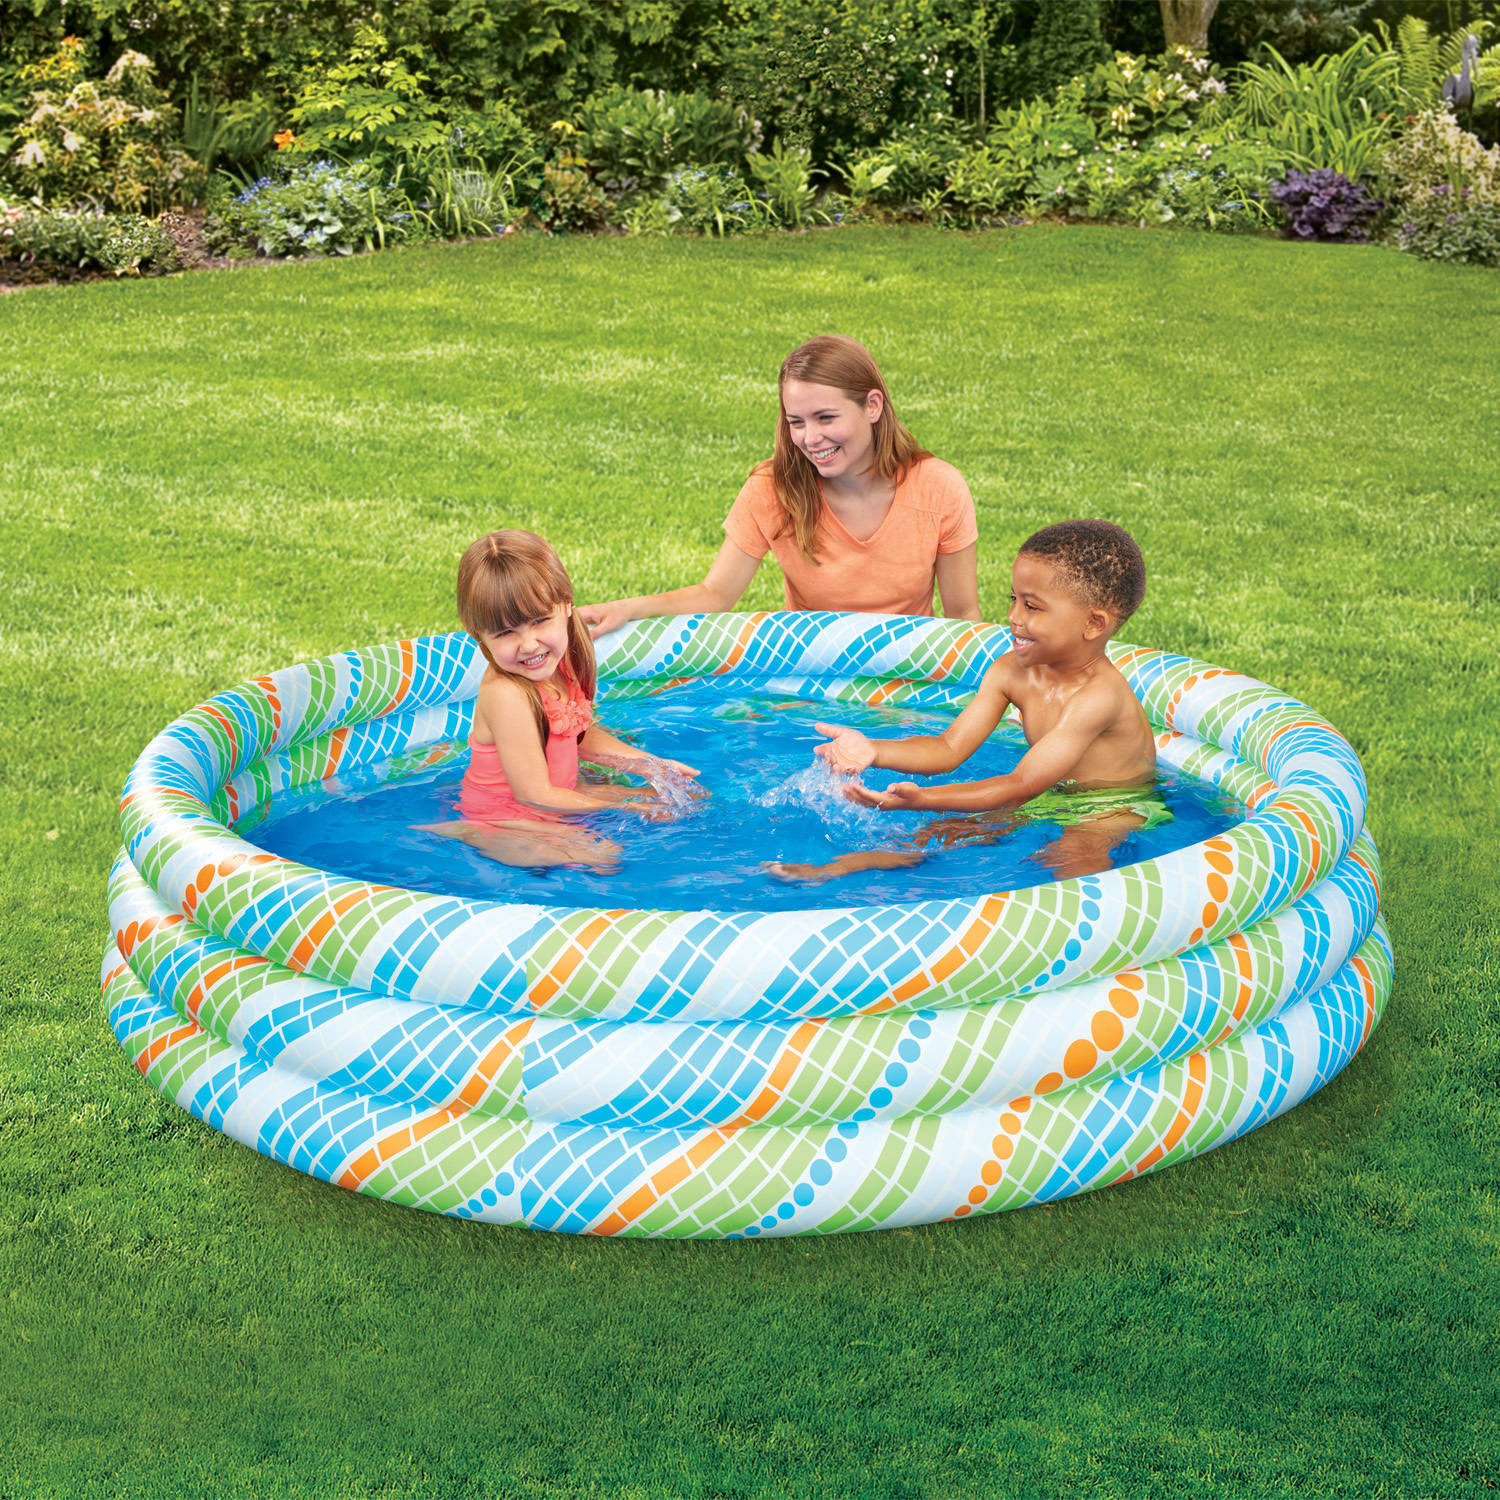 Plastic Pools For Kids plastic kid pools